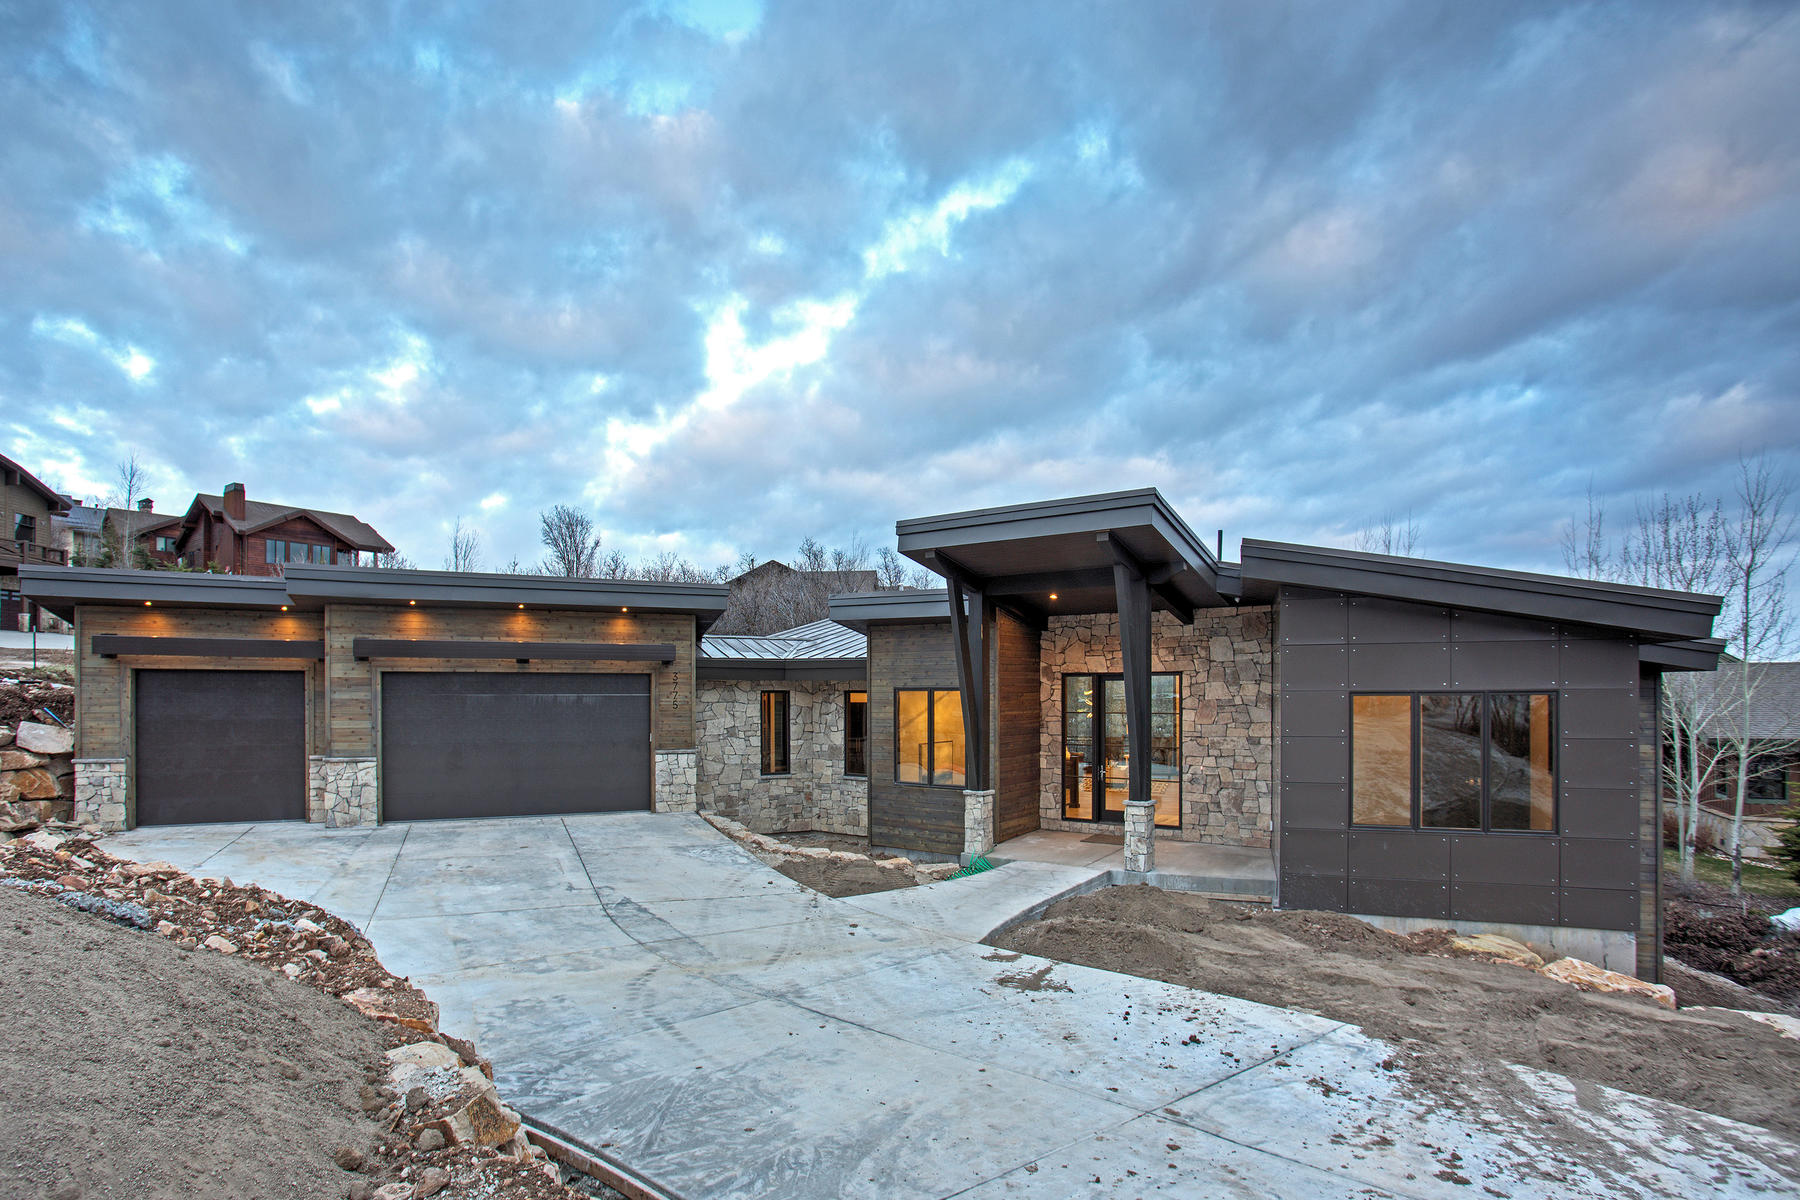 Single Family Home for Sale at New Contemporary Construction in Royal Oaks at Deer Valley 3775 Sun Ridge Dr Park City, Utah 84060 United States